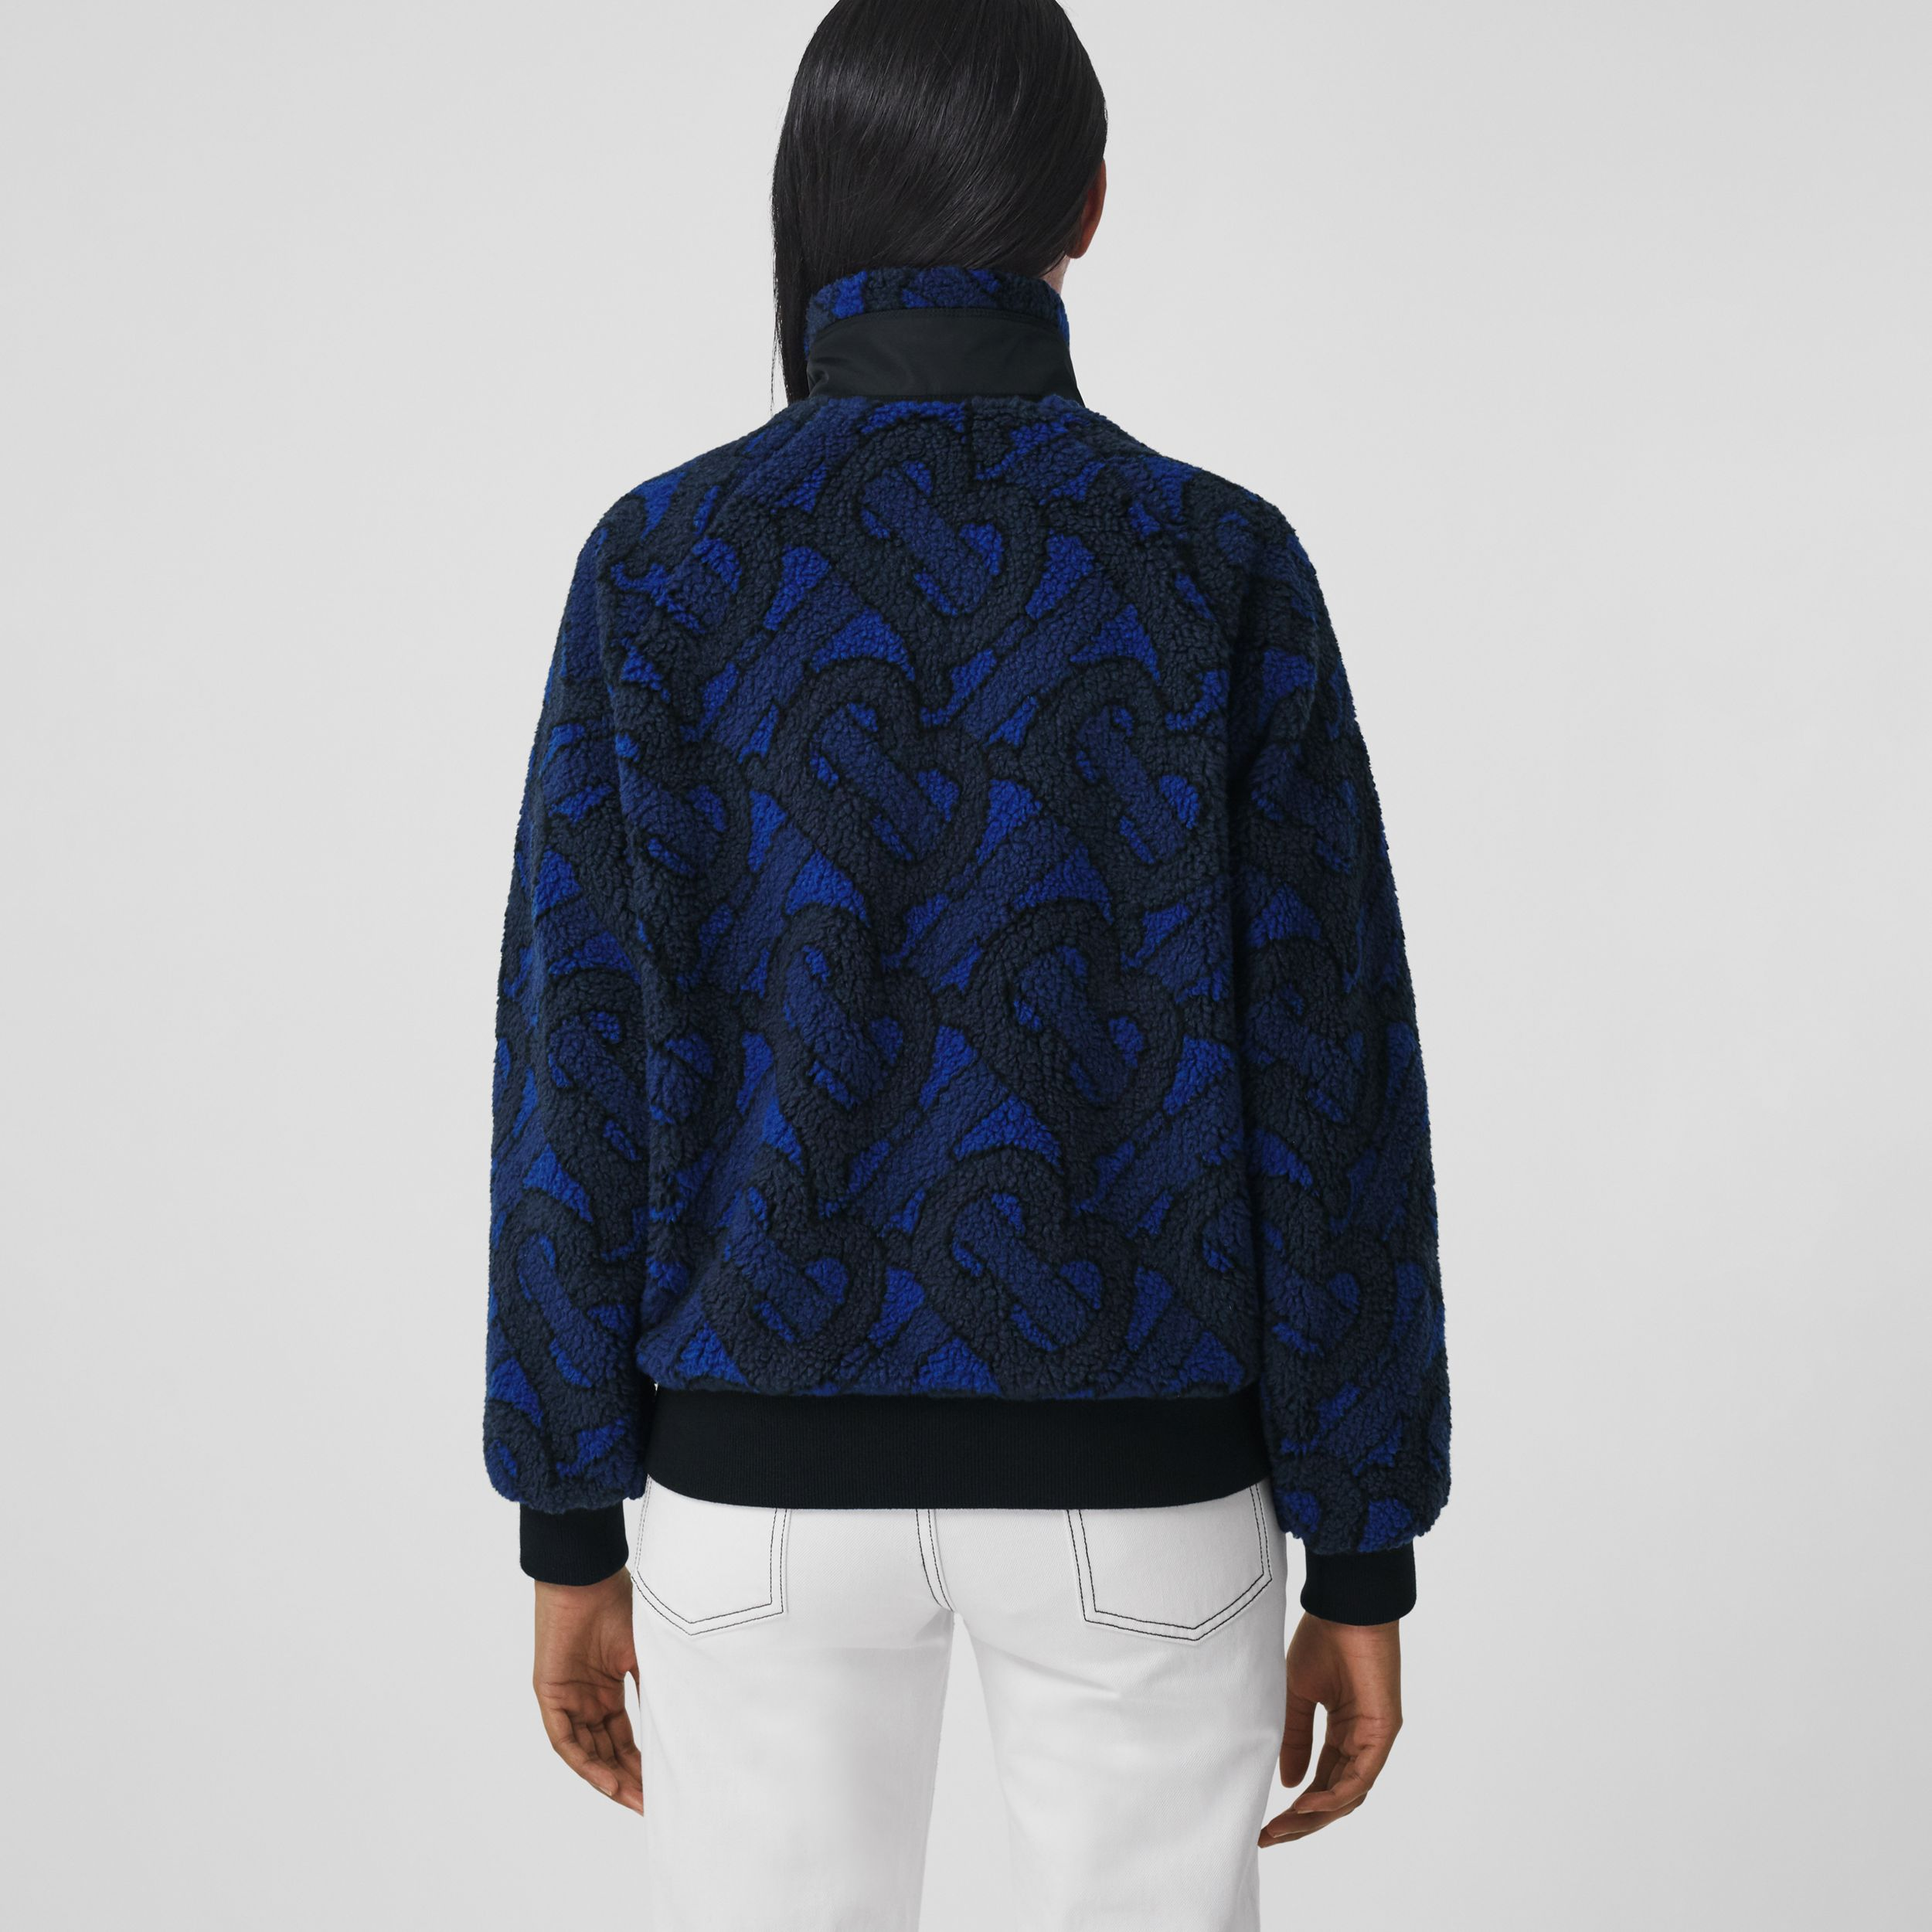 Monogram Fleece Jacquard Jacket in Navy - Women | Burberry - 3